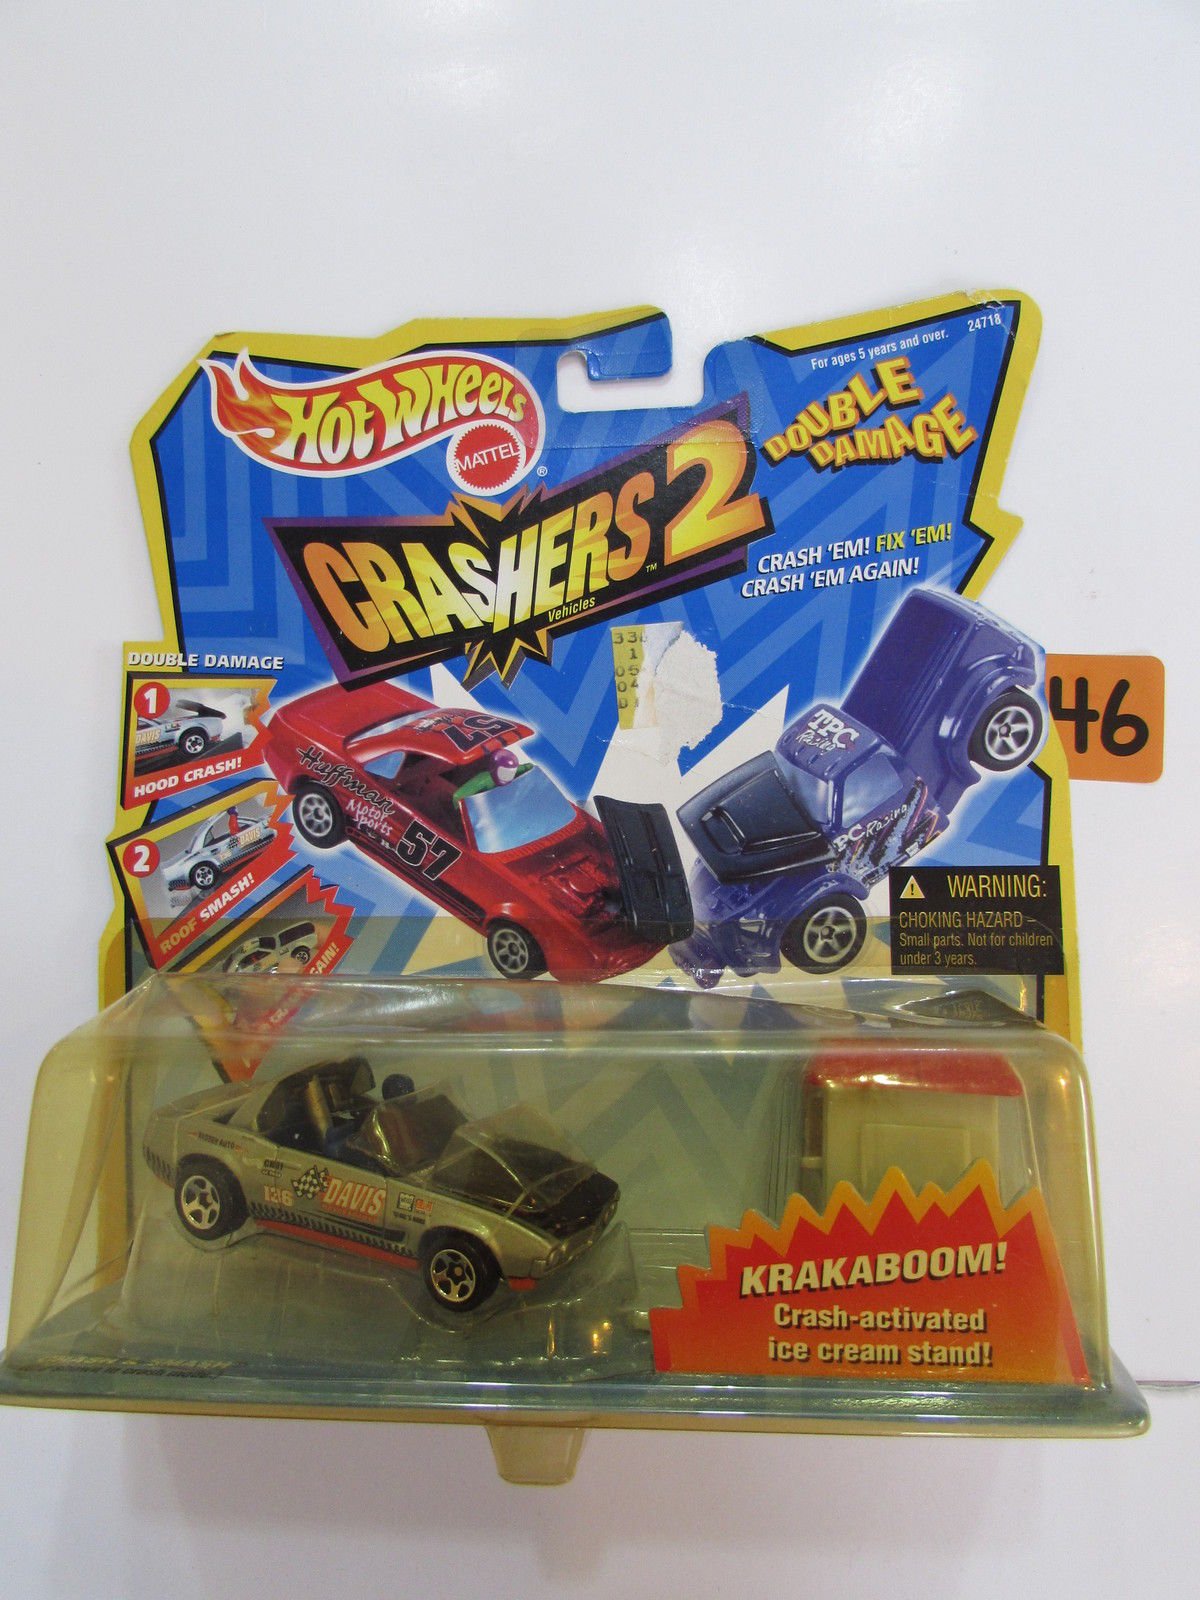 HOT WHEELS CRASHERS 2 DOUBLE DAMAGE